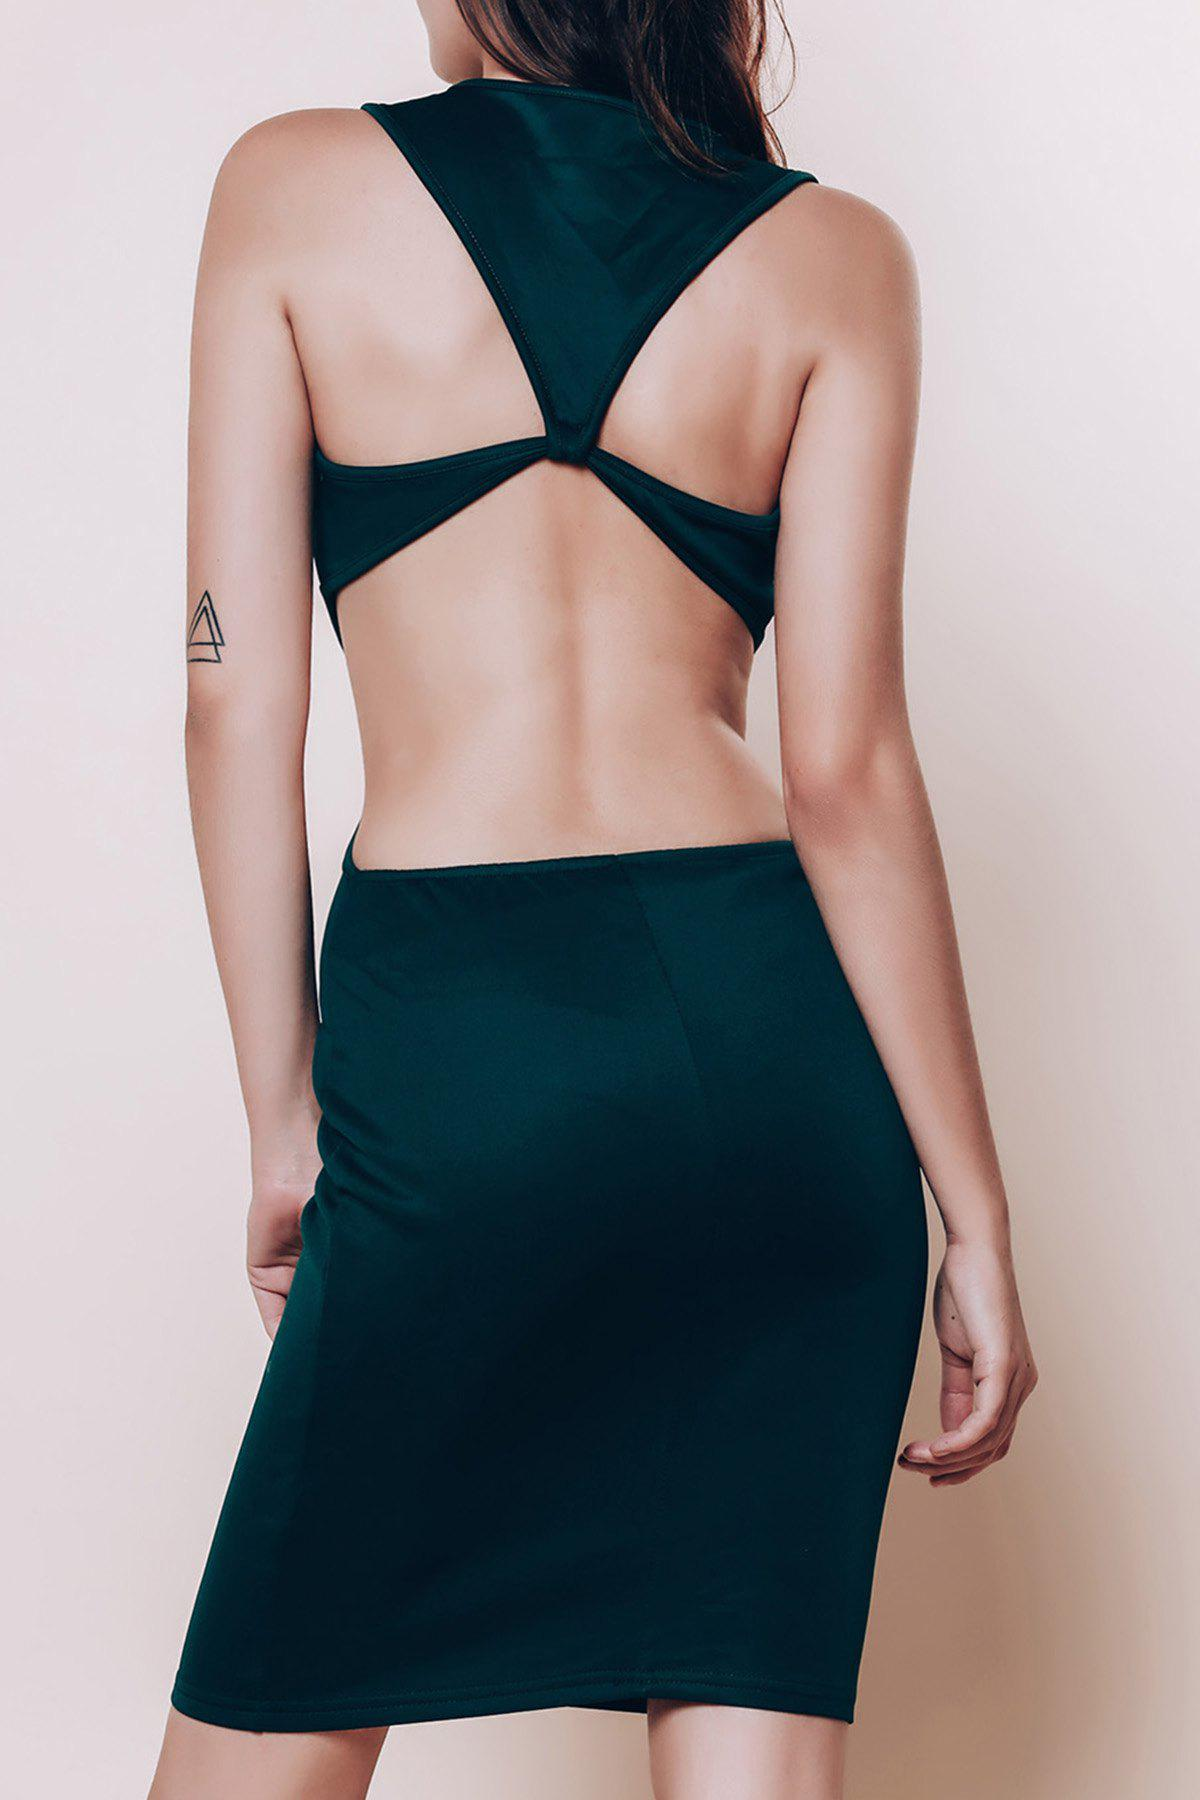 Alluring Scoop Neck Sleeveless Cut Out Solid Color Women's Dress 159400403